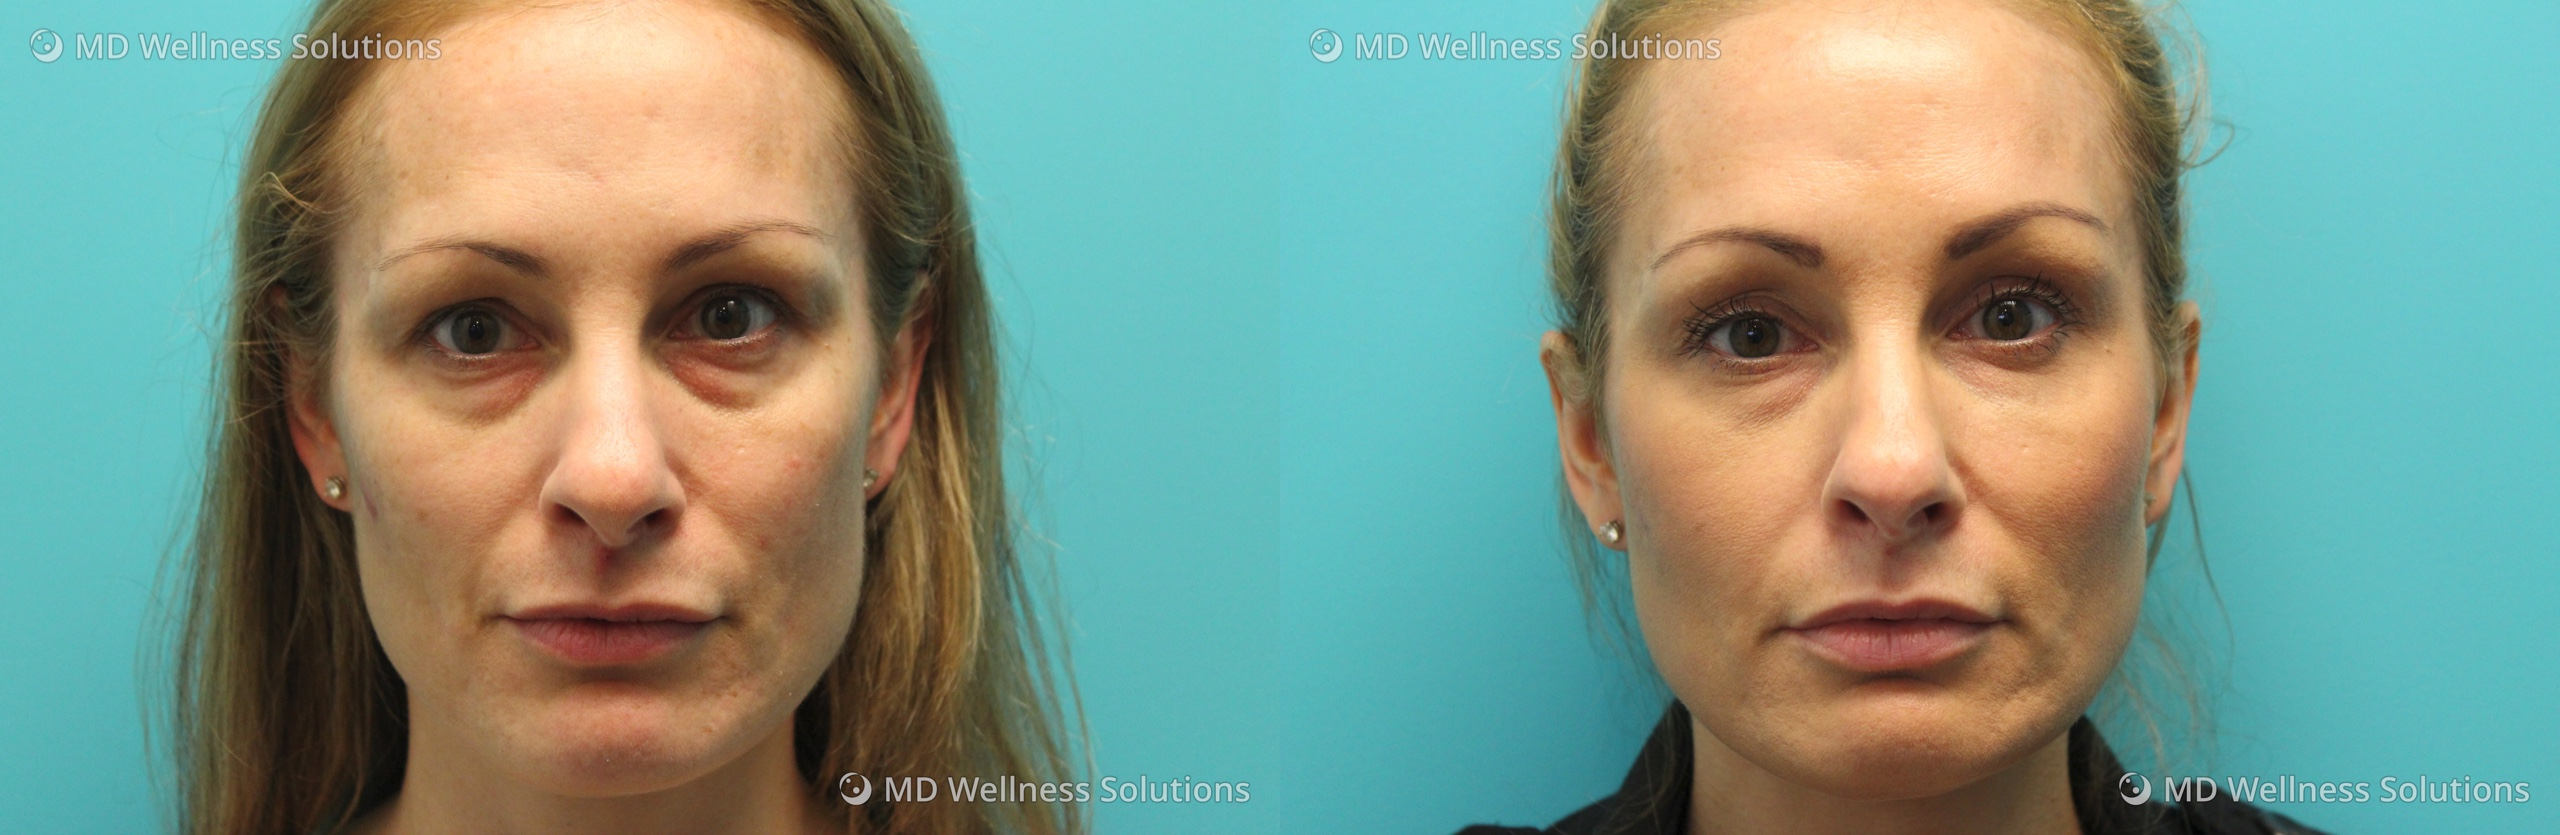 35-44 year old woman before and after dermal filler treatment